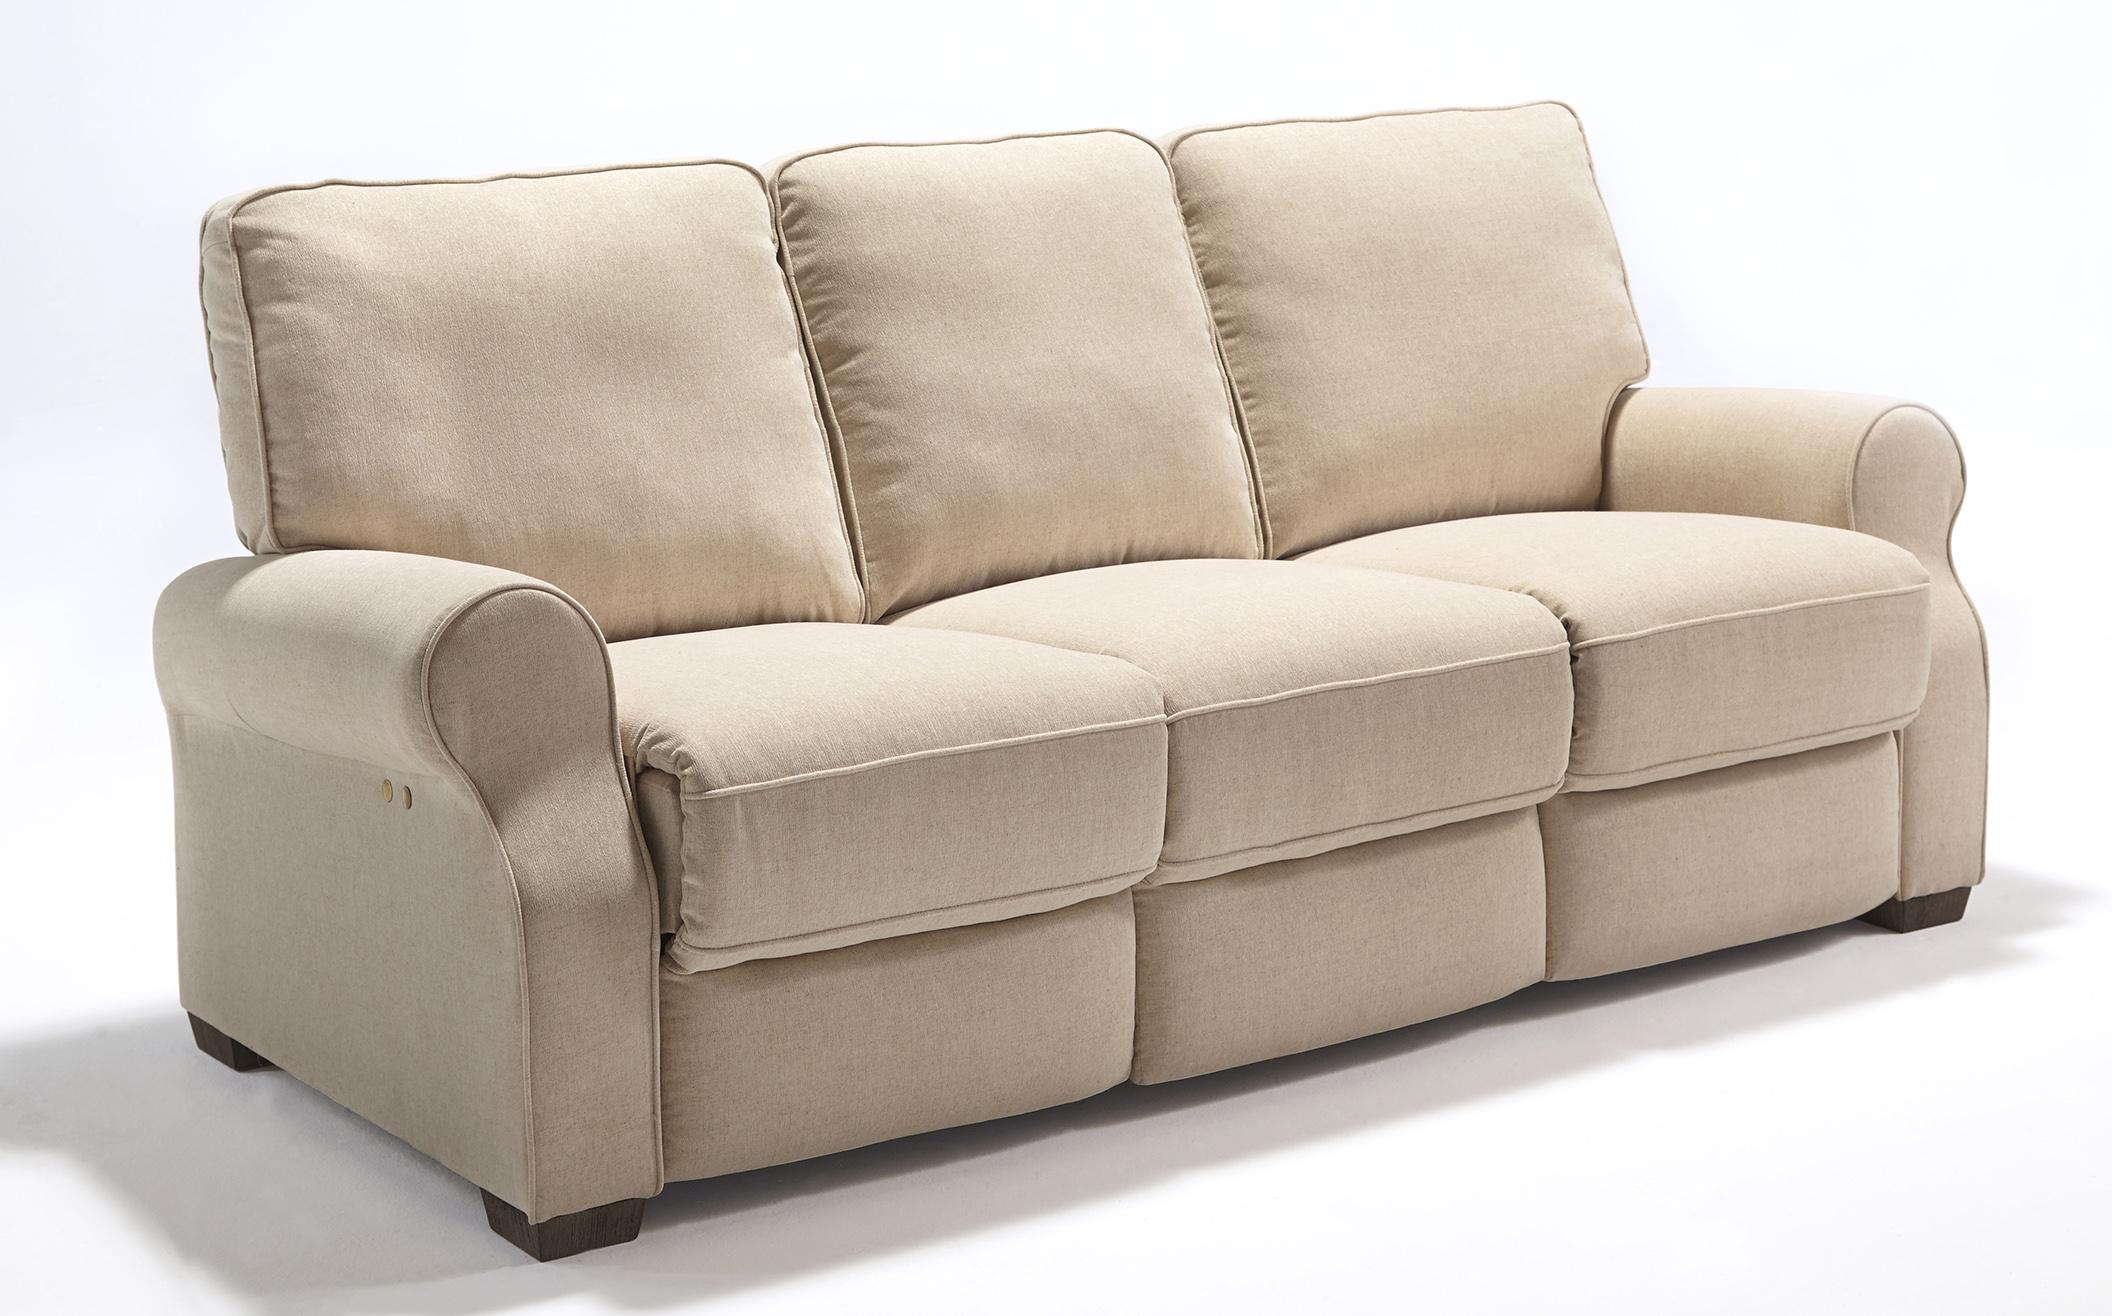 Lovely Electric Reclining Sofa 20 About Remodel Living Room Sofa Ideas with Electric Reclining Sofa